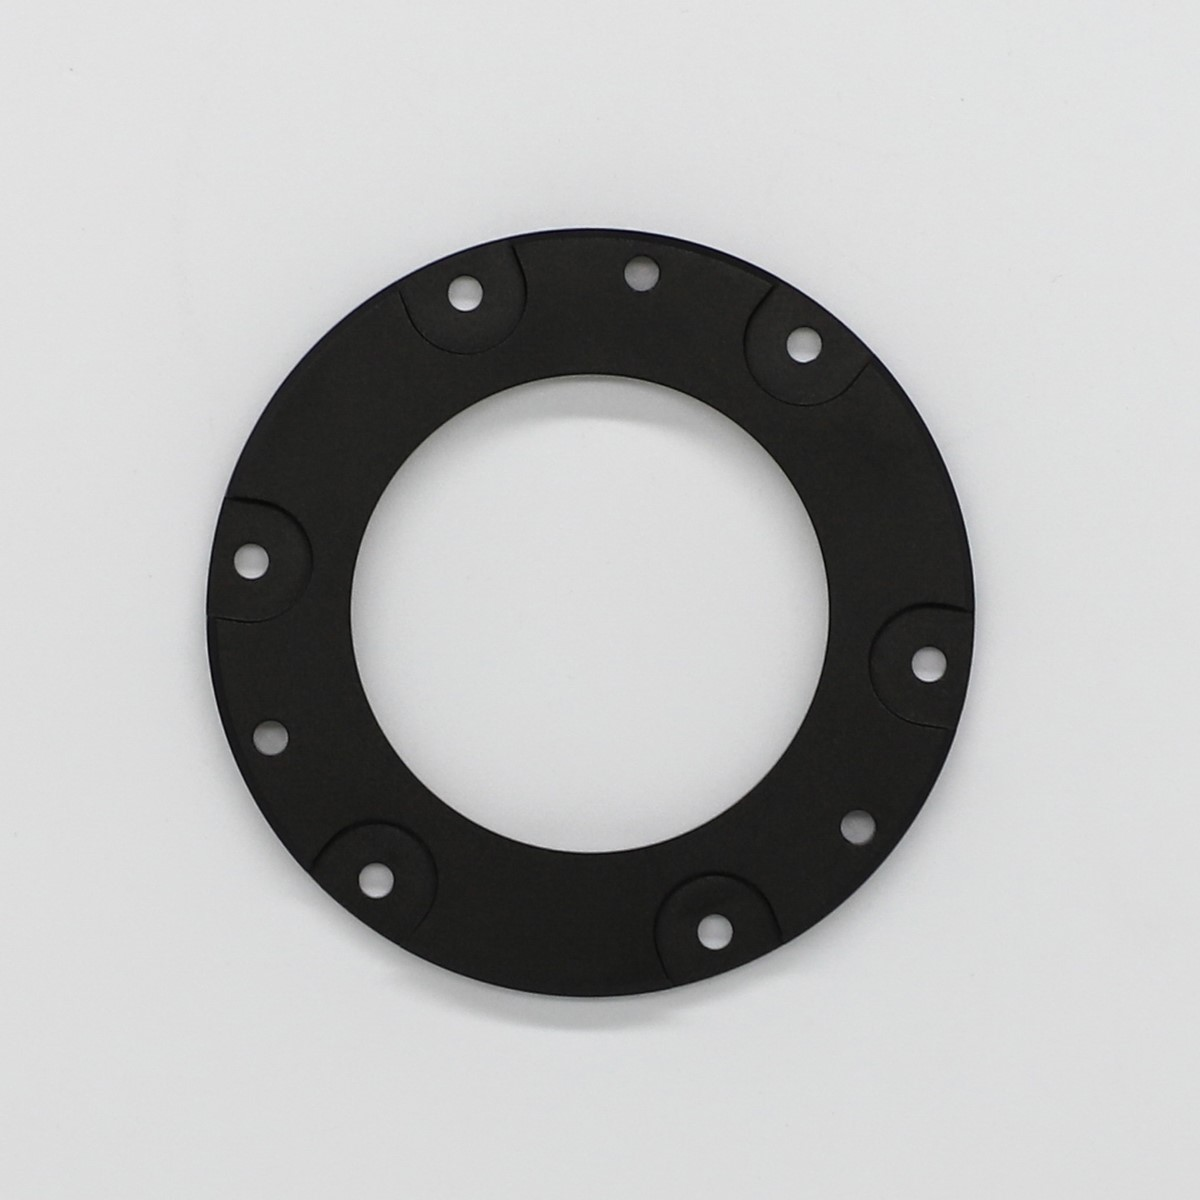 Xavier high-precision cnc machined lens parts high performance from top factory-2